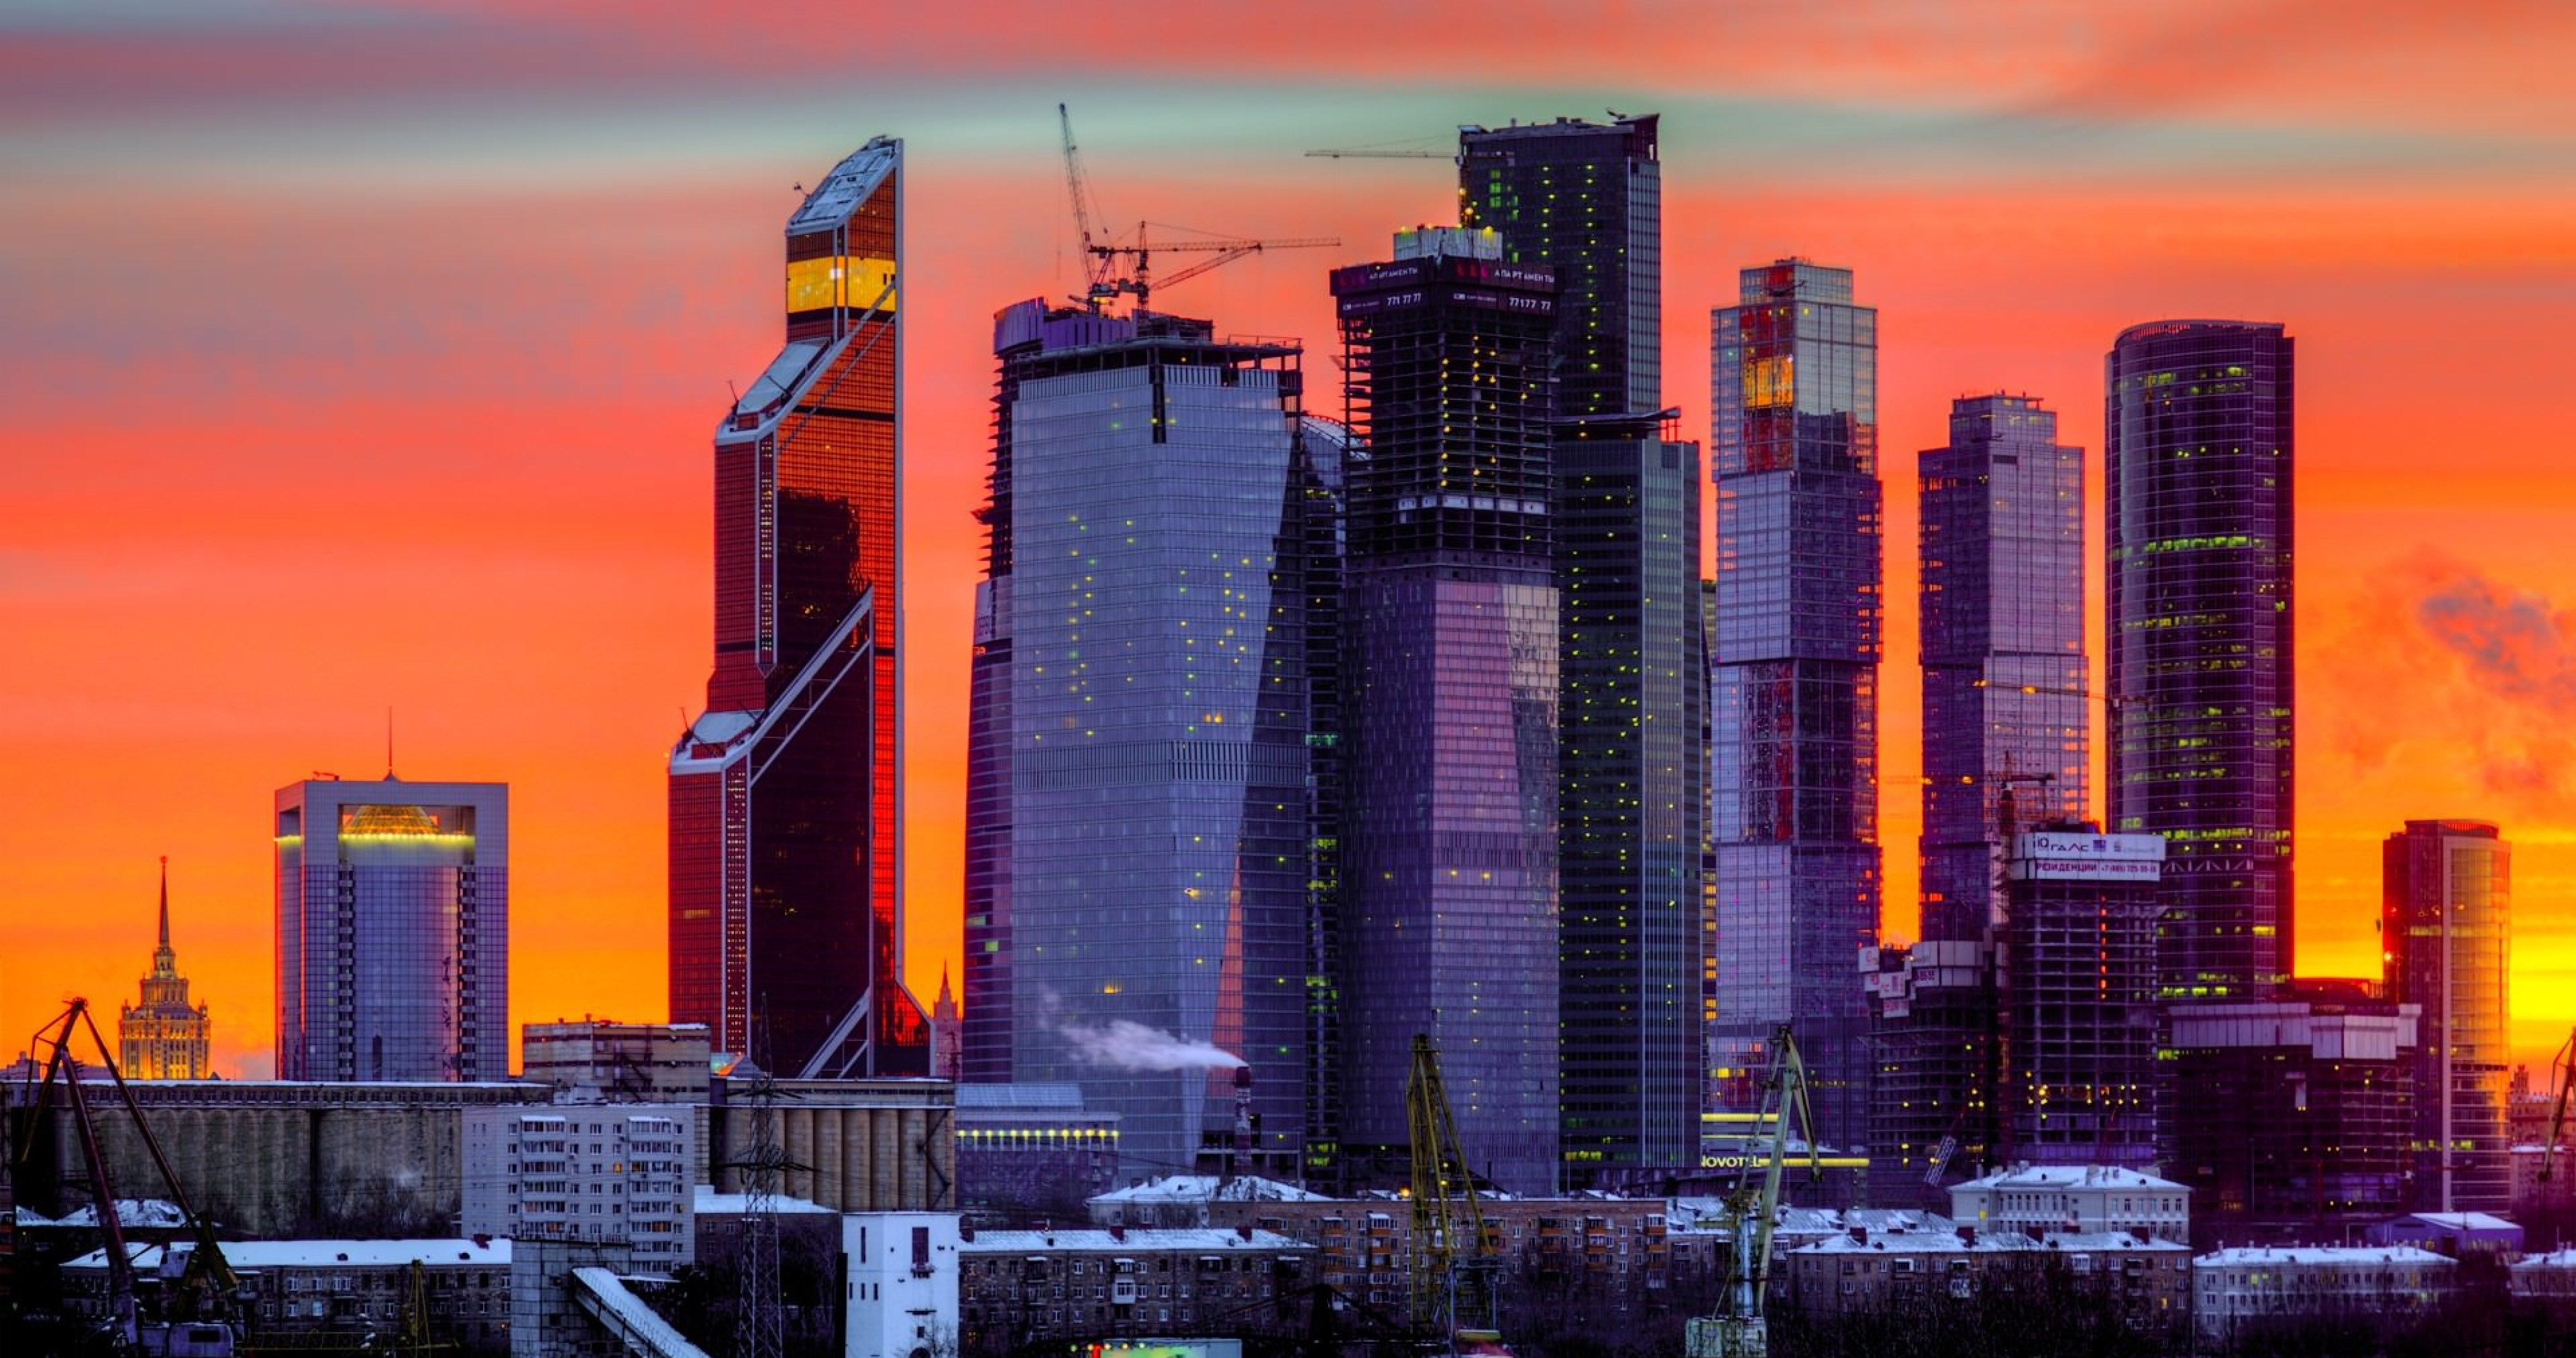 moscow city night tower 2000 4k ultra hd wallpaper World